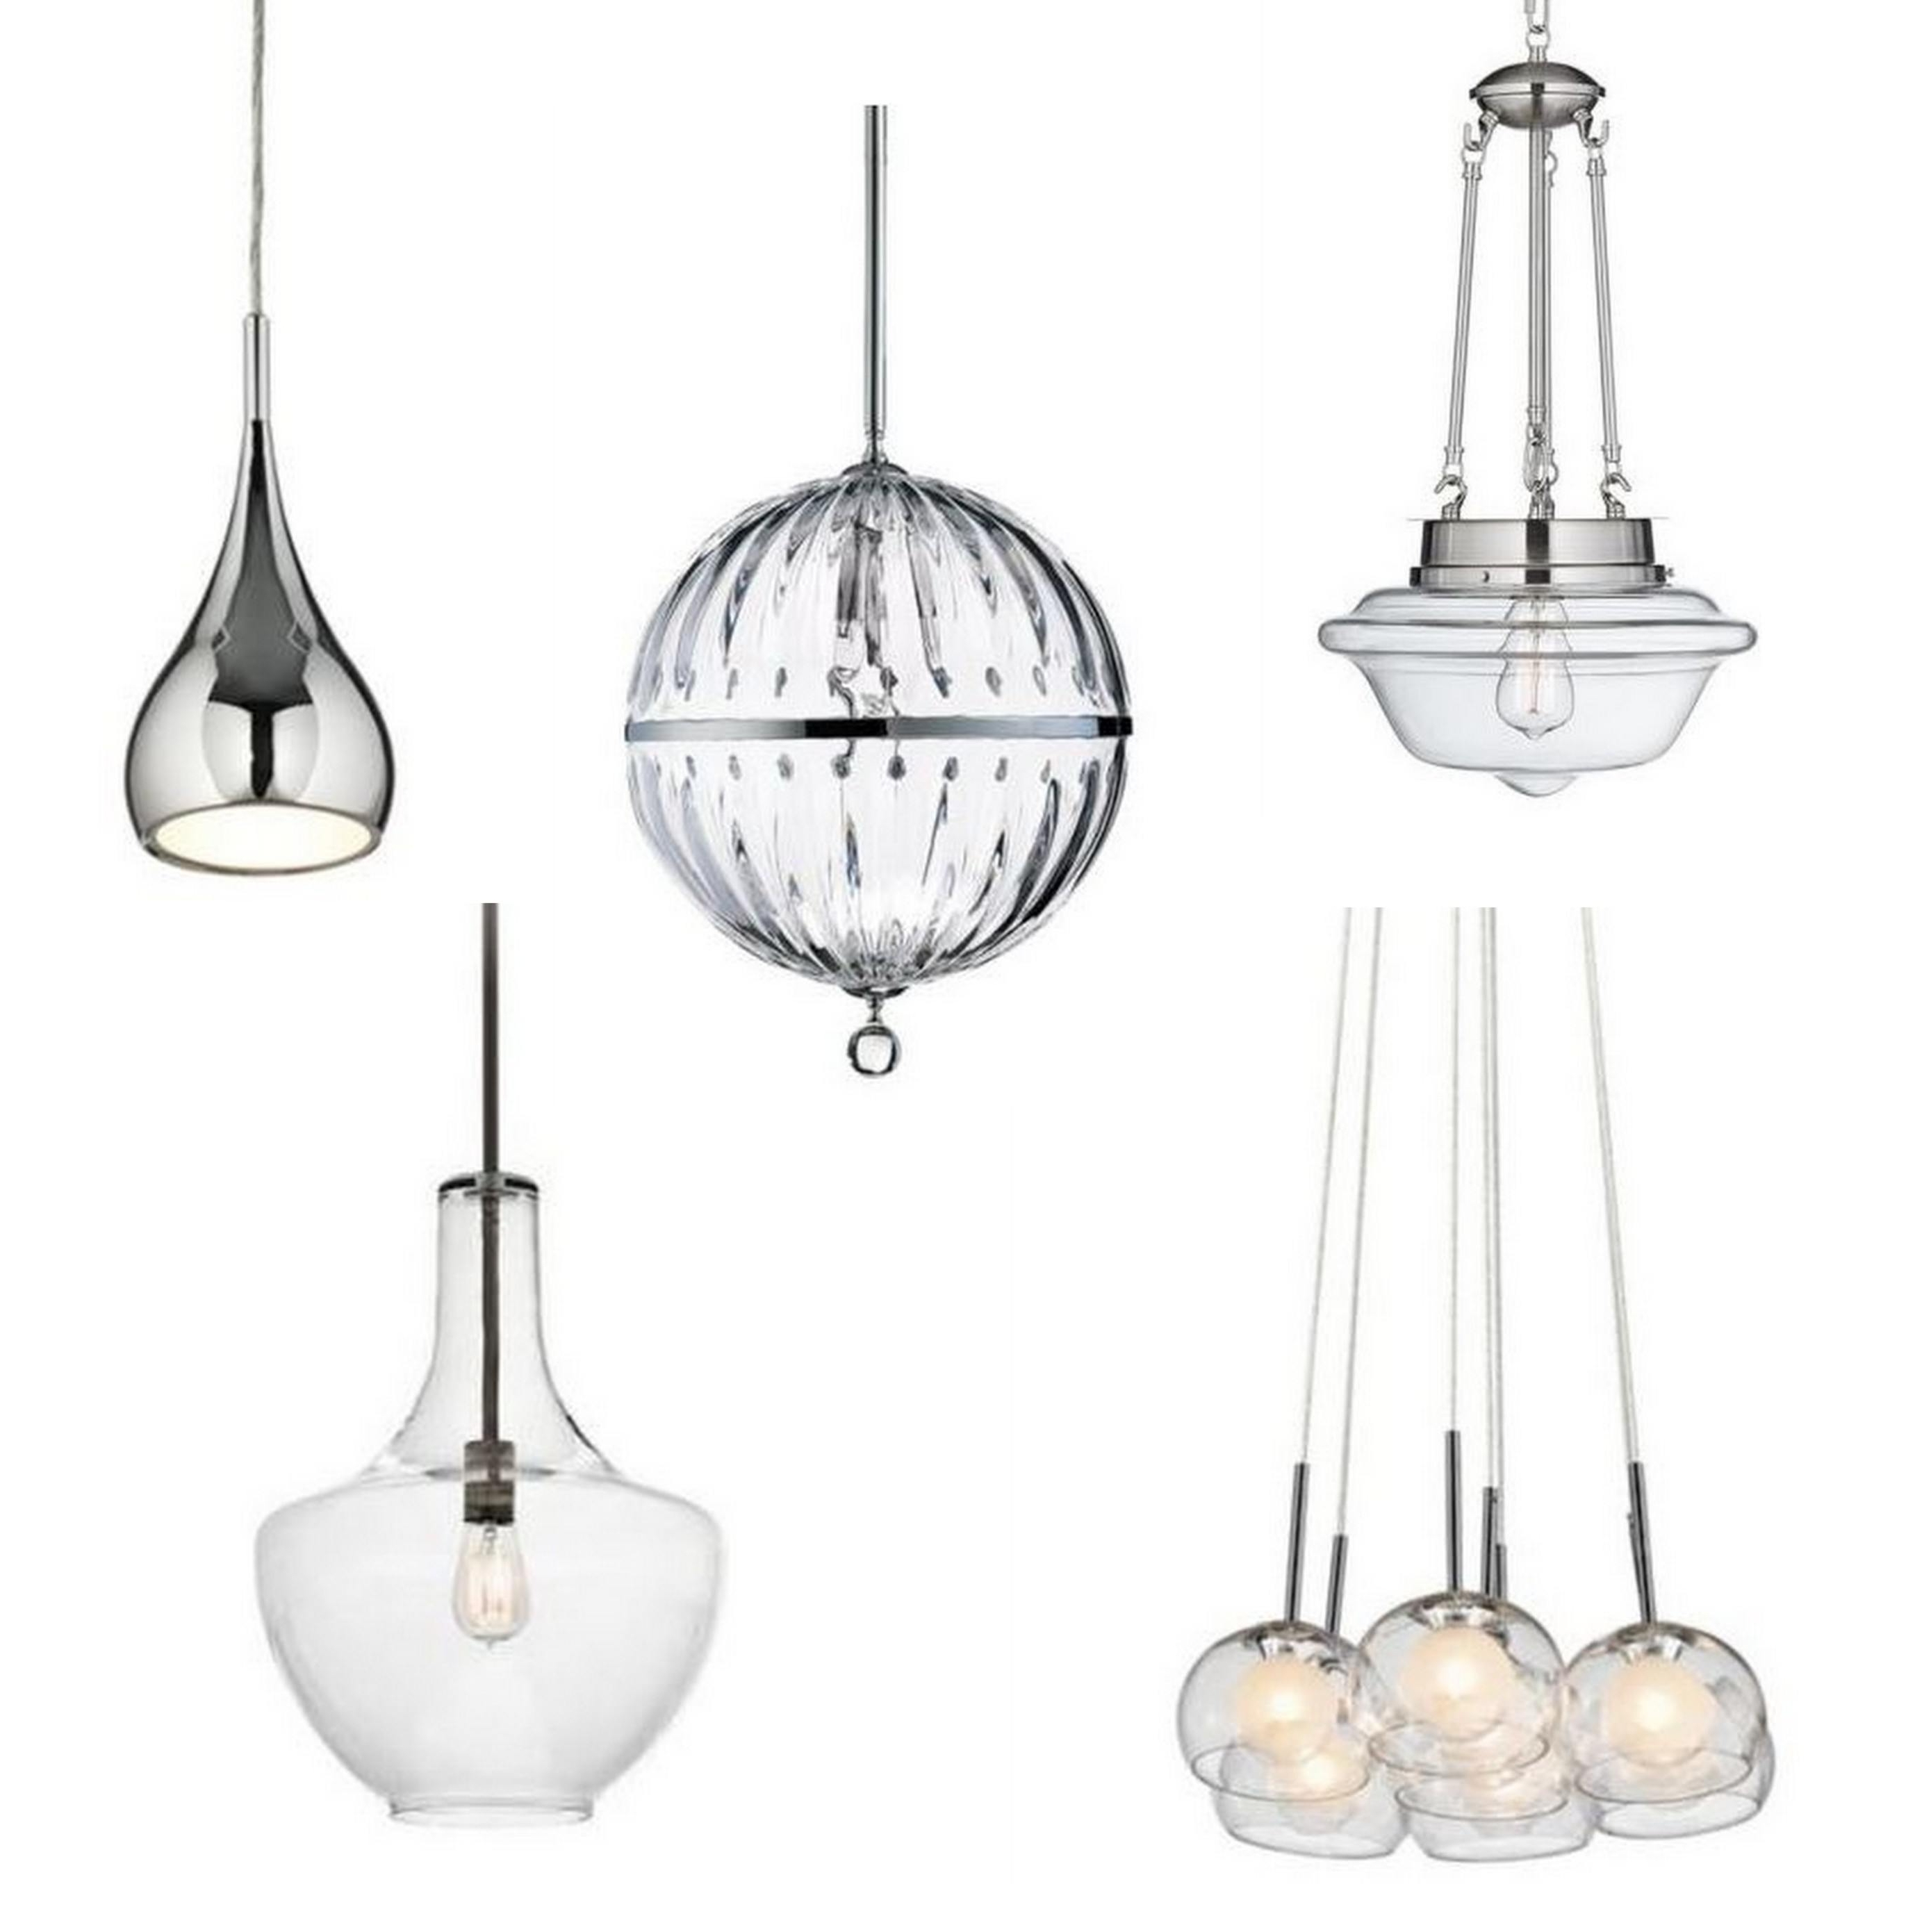 John Lewis Outdoor Ceiling Lights Within Latest 59 Great Astounding Amazing Cluster Glass Pendant Light Fixture On (View 12 of 20)